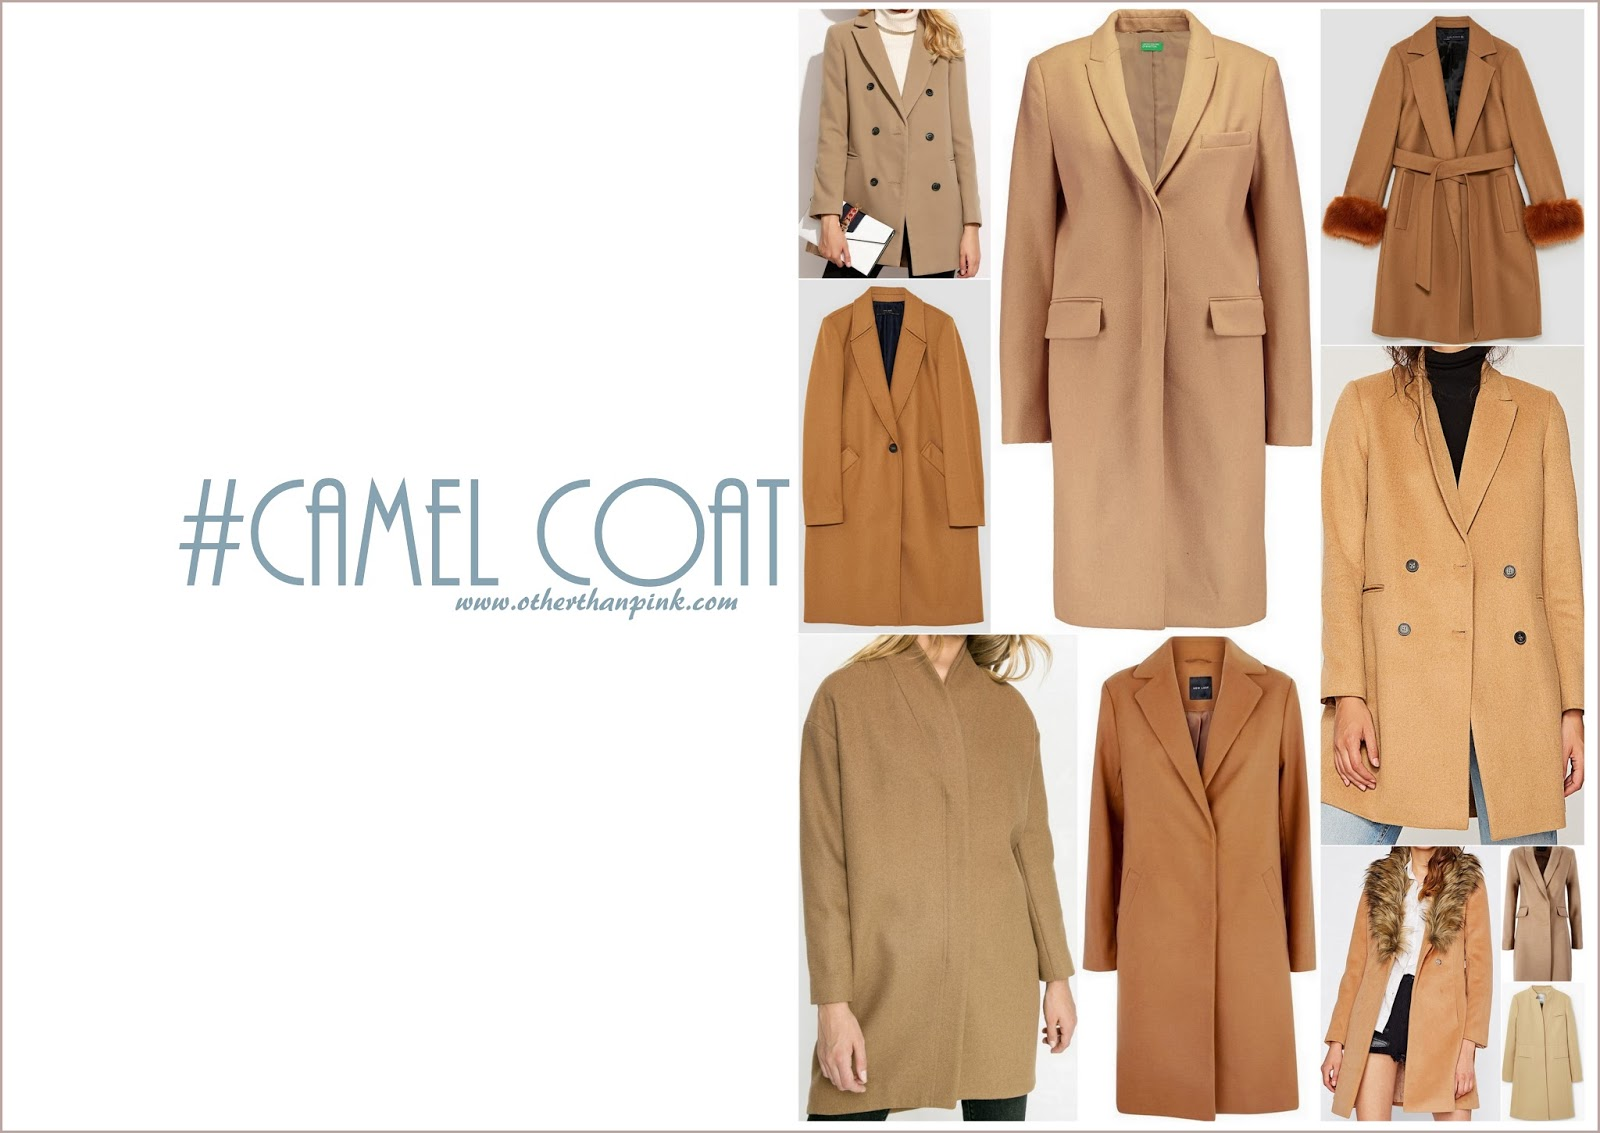 My personal MUST HAVE list #8 - camel coat